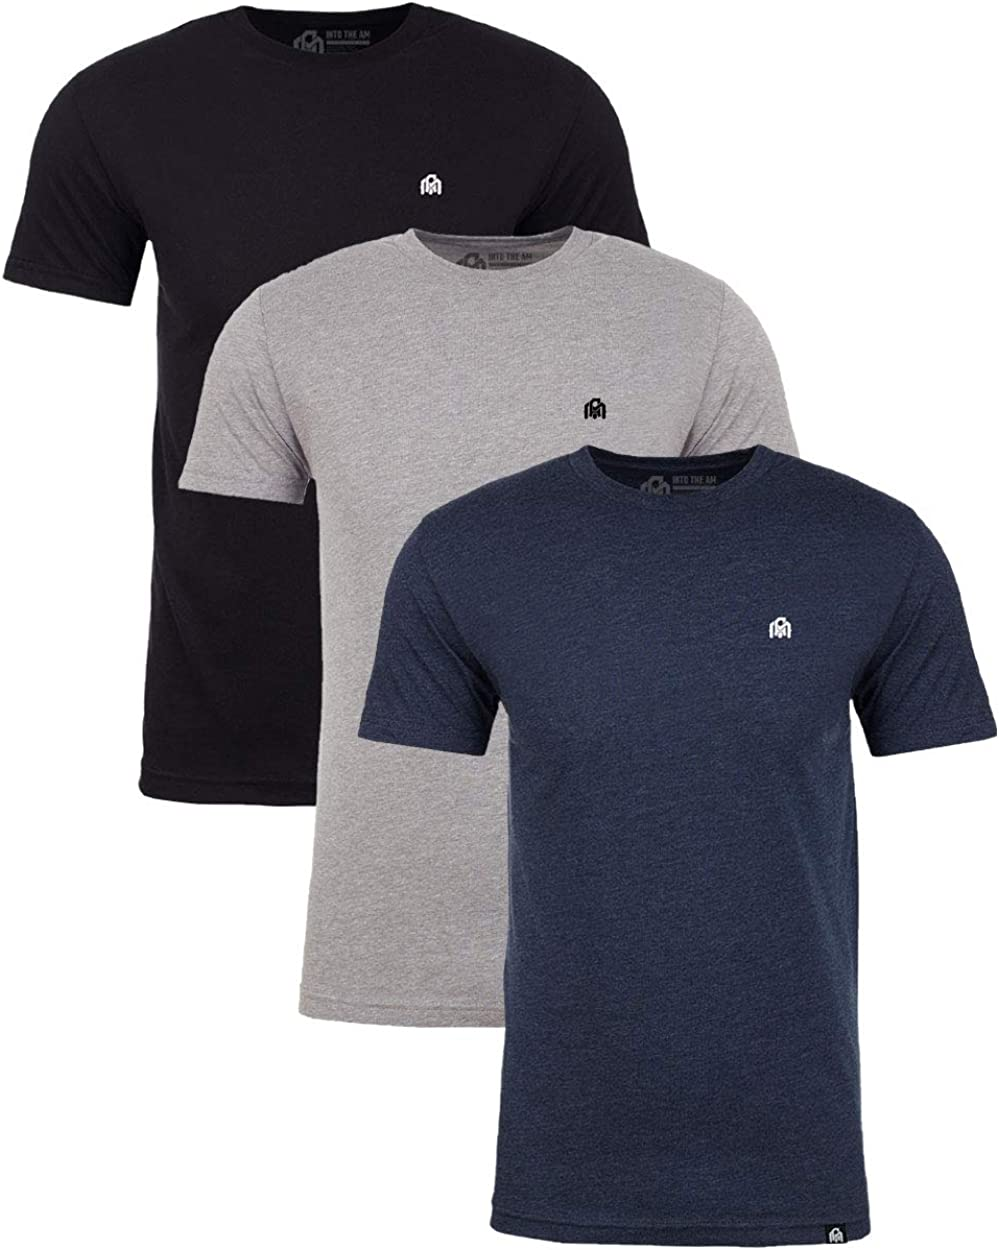 INTO THE AM Men's Basic Crew Neck Tees - Soft Modern Fitted Logo T-Shirts